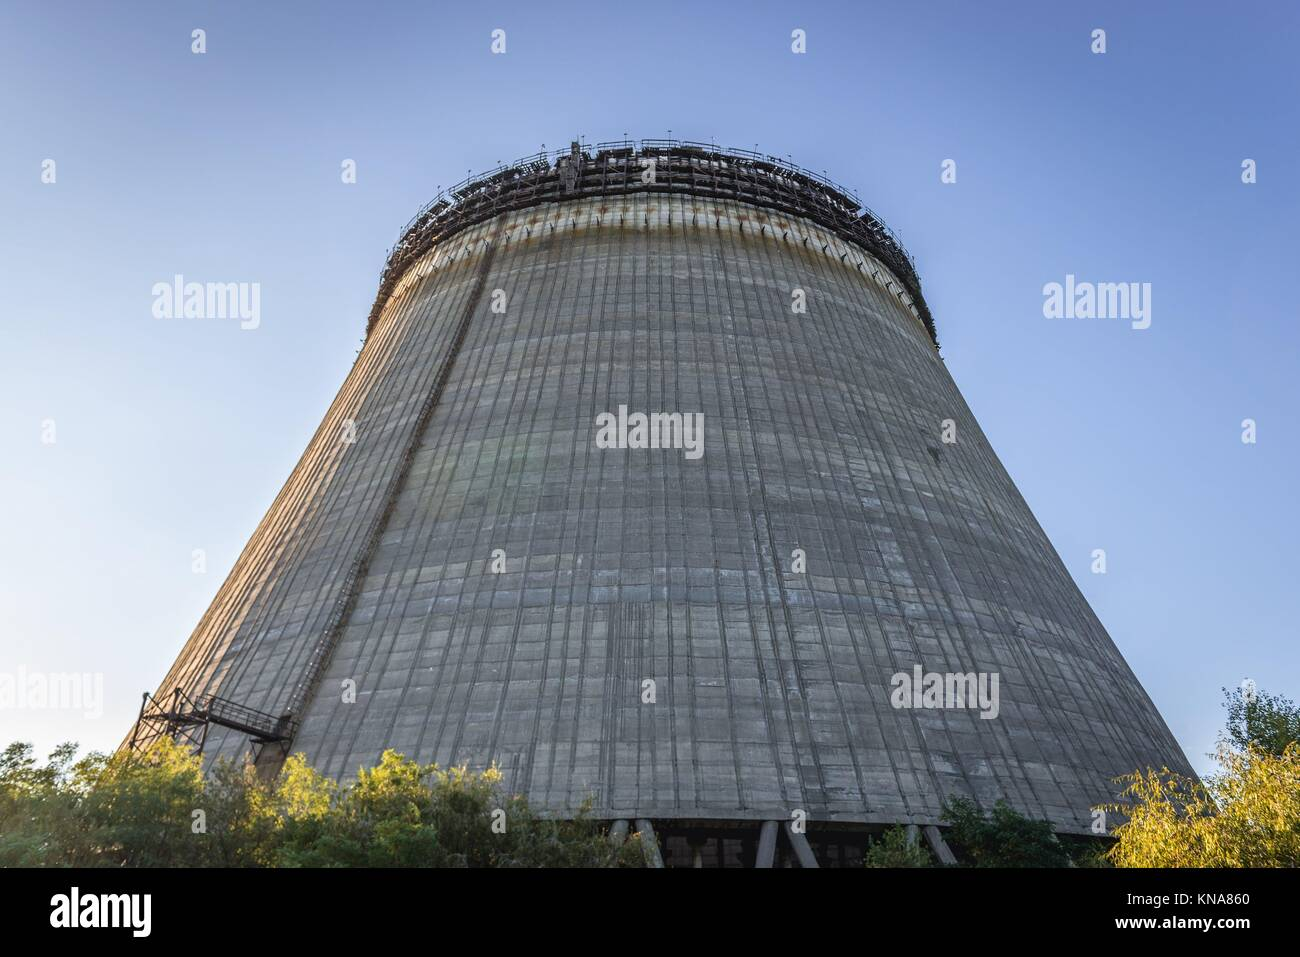 View on cooling tower of Chernobyl Nuclear Power Plant in Zone of Alienation around the nuclear reactor disaster - Stock Image